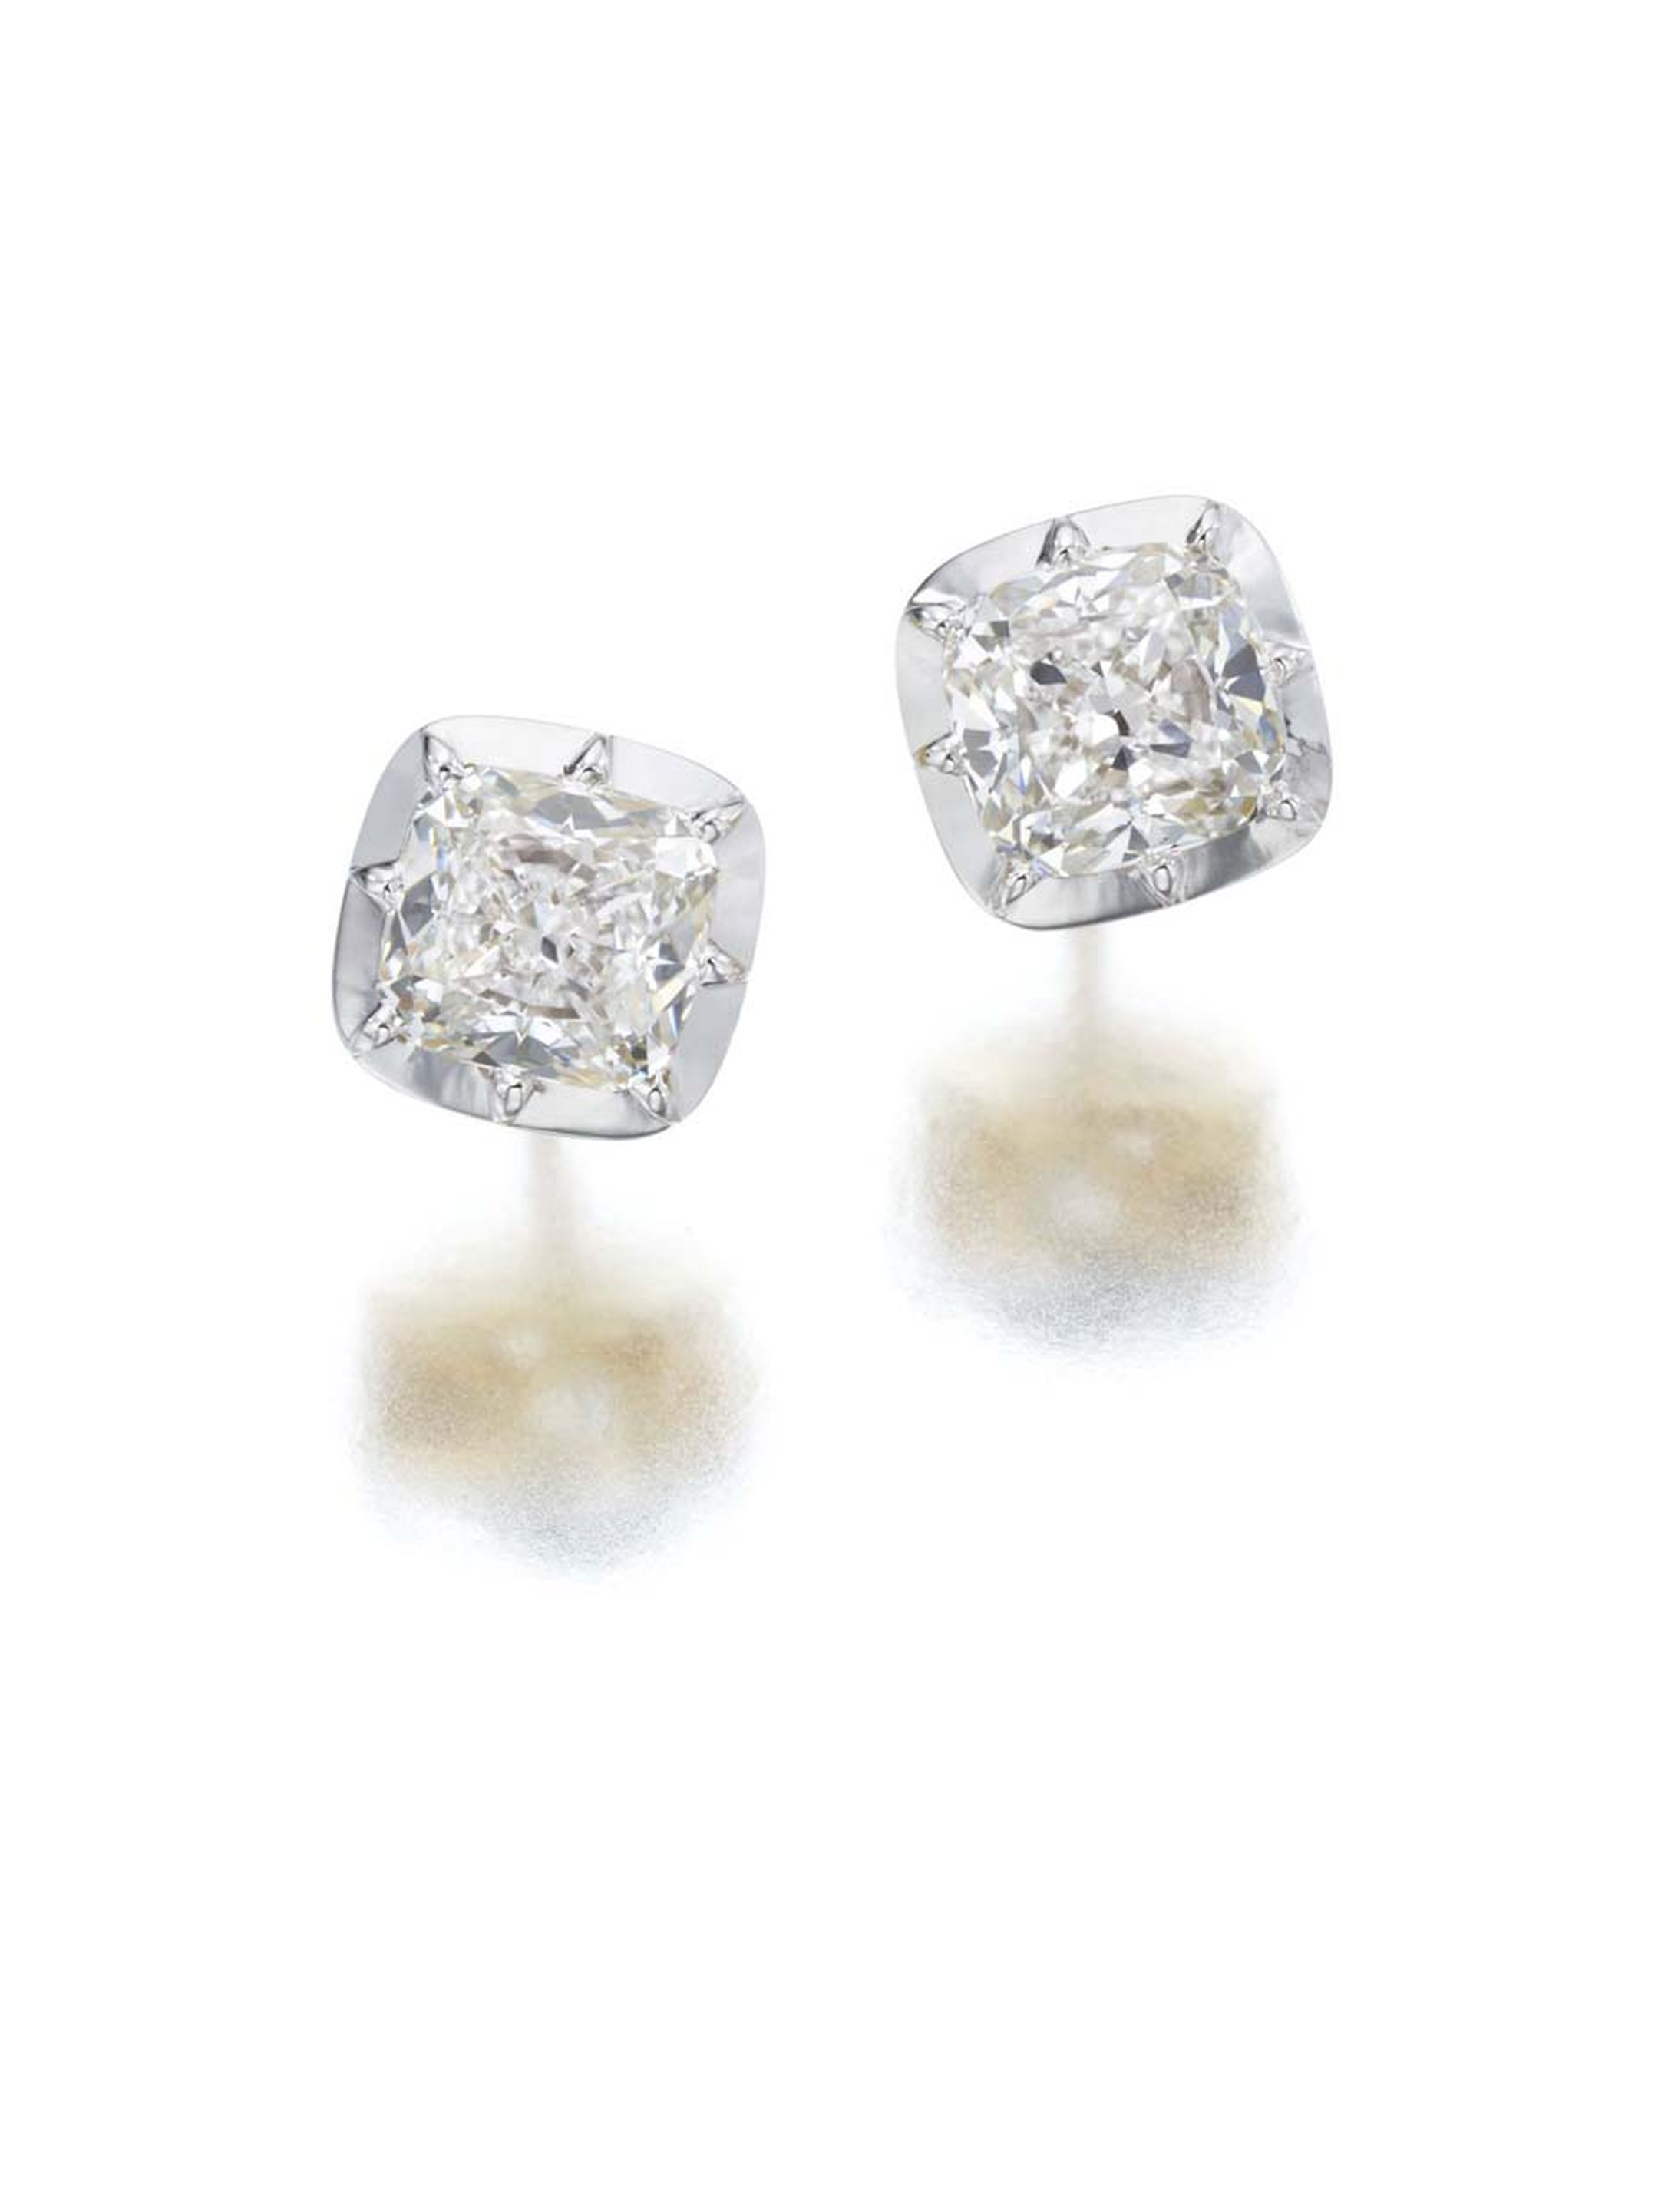 Jessica McCormack Snowdrop diamond studs in white gold, set with 3.06ct cushion-cut diamonds